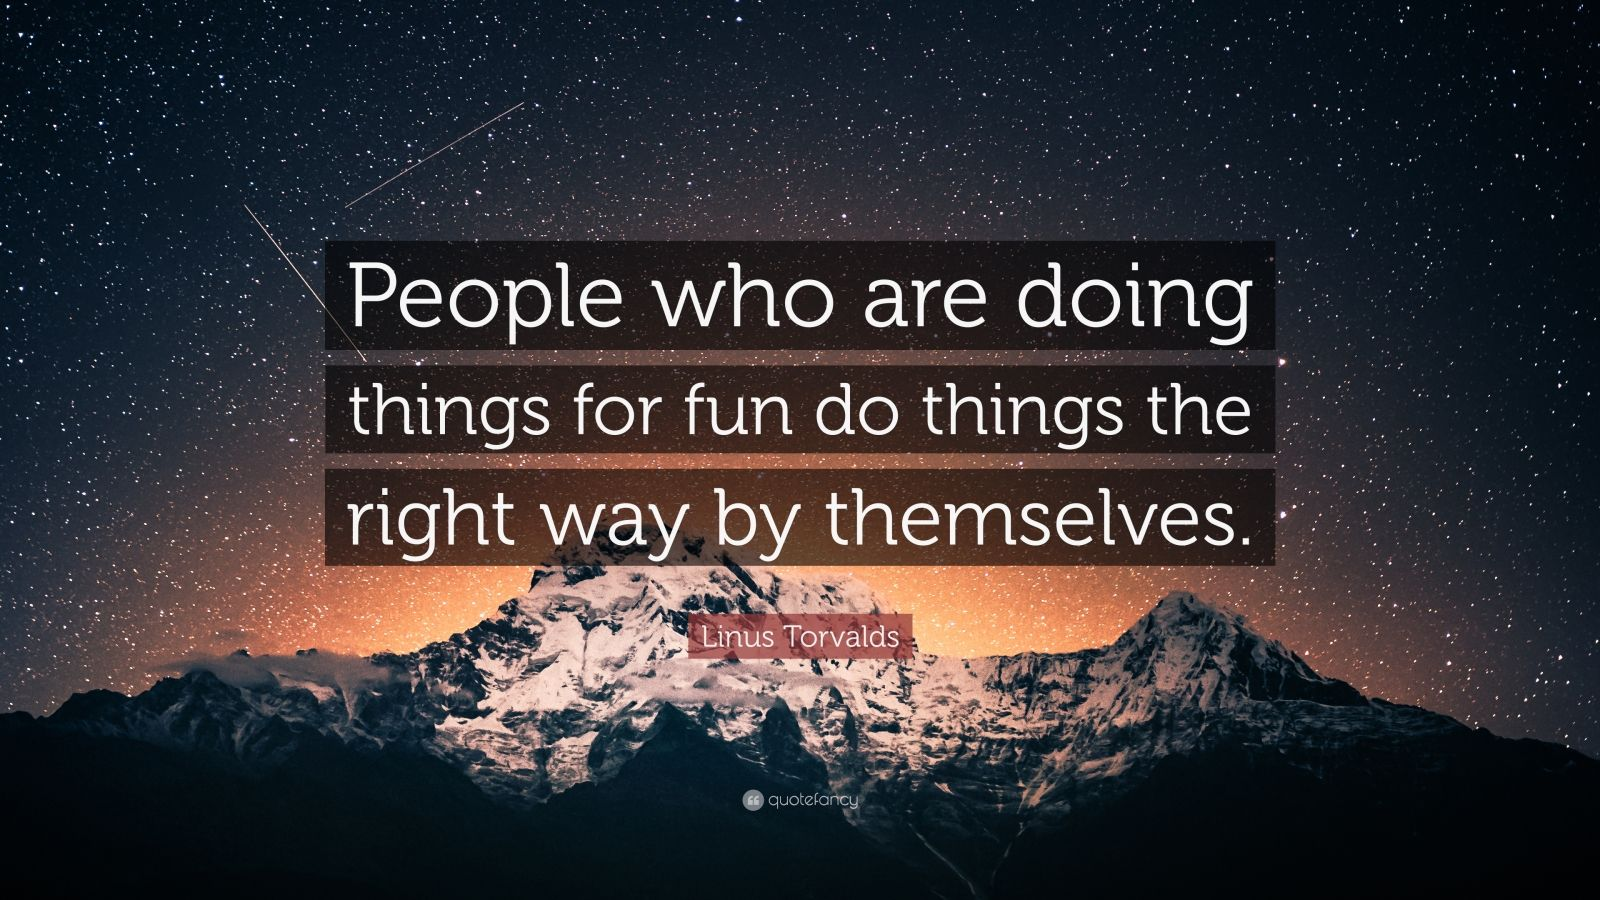 """Linus Torvalds Quote: """"People who are doing things for fun do things the right way by themselves."""""""